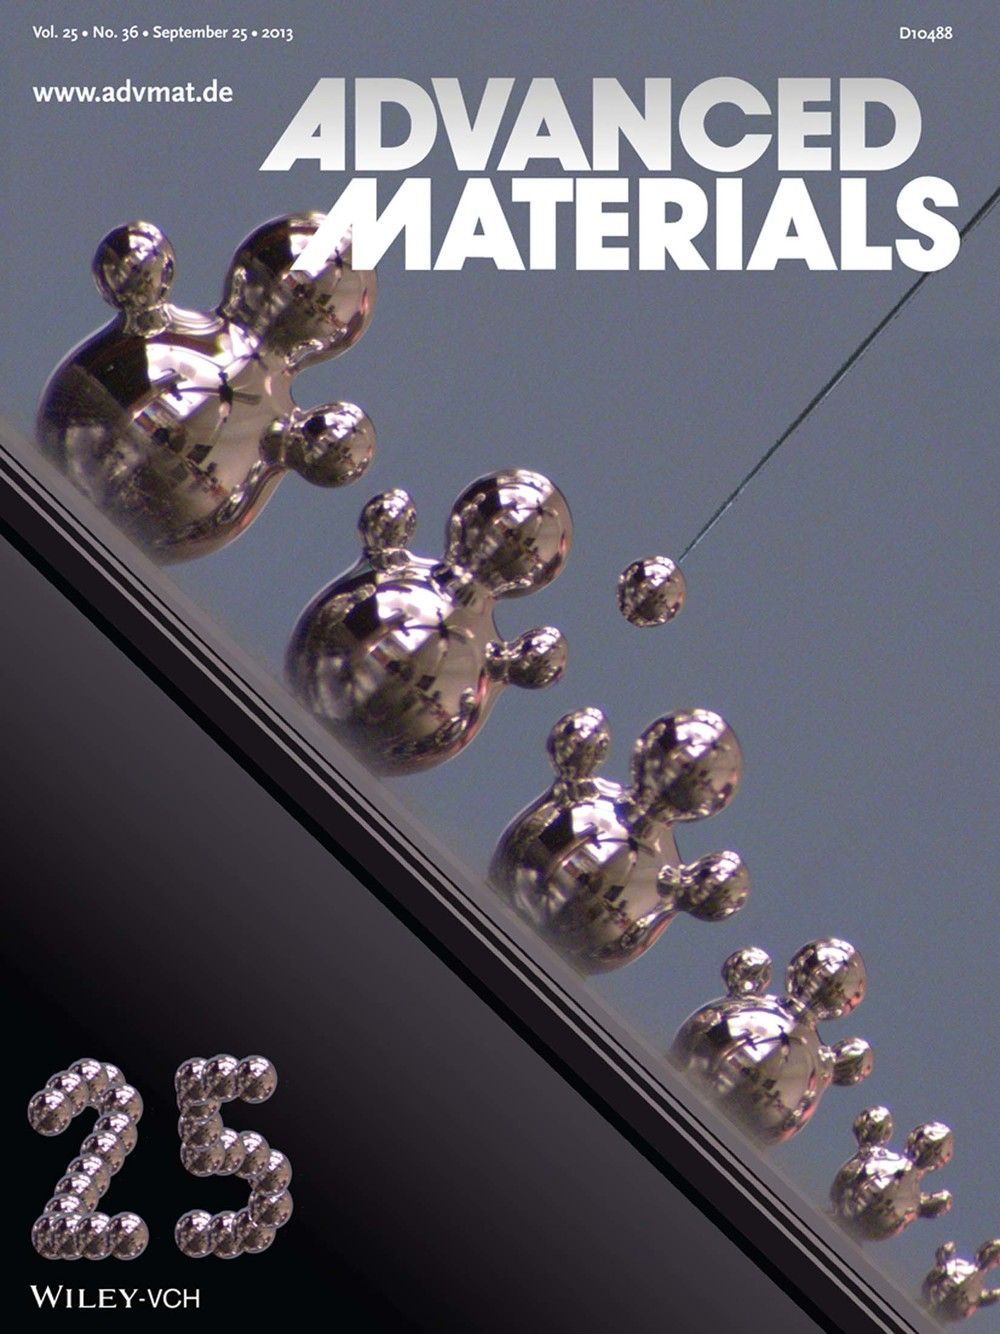 advanced materials cover.jpg